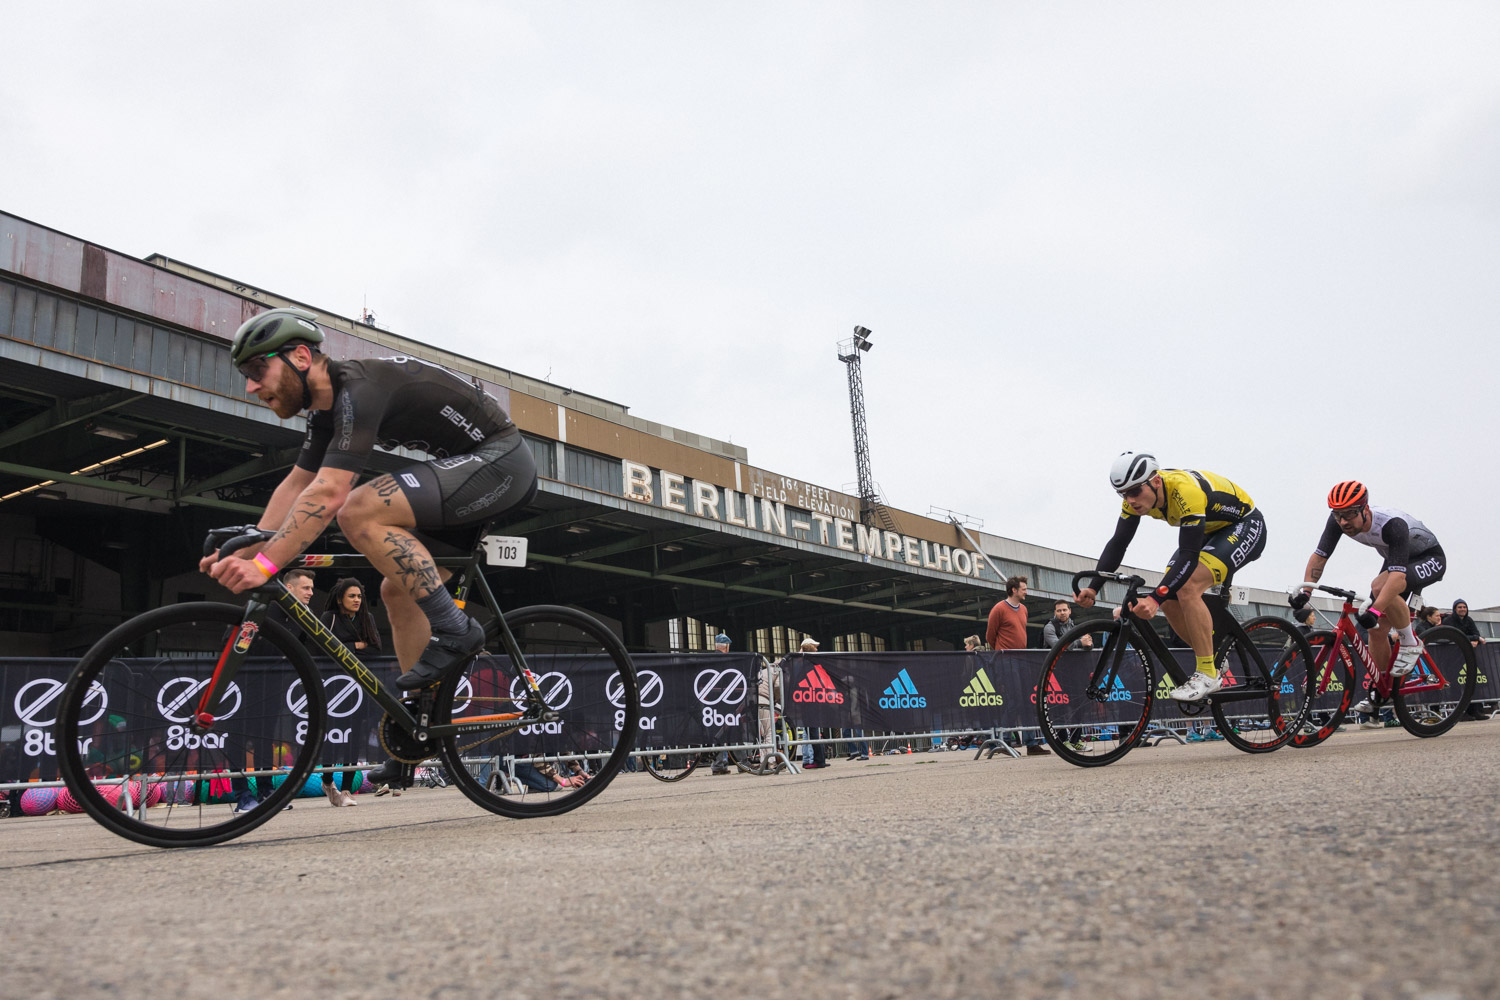 8barcrit 2018 fixed gear race 24 2 - Schnell, schneller, 8bar crit 2018 - der Rennbericht!